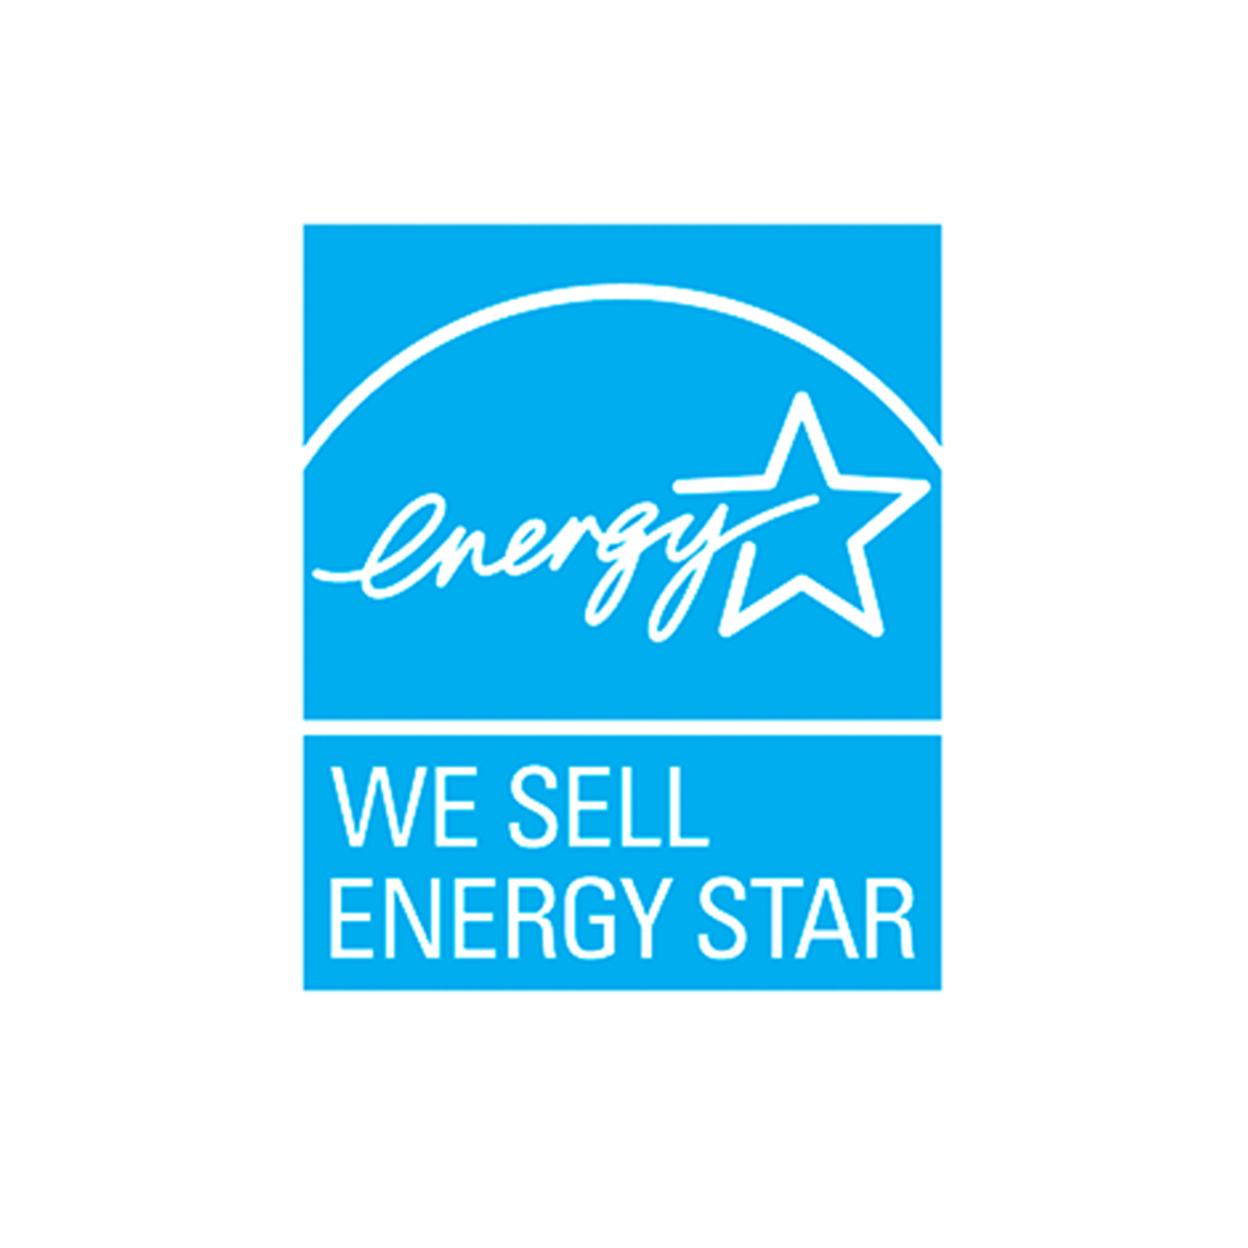 You will gain valuable energy savings when you choose our High Performance   Glass option. O  ur products ordered with High Performance Glass will meet ENERGY STAR® guidelines in all US climate zones.